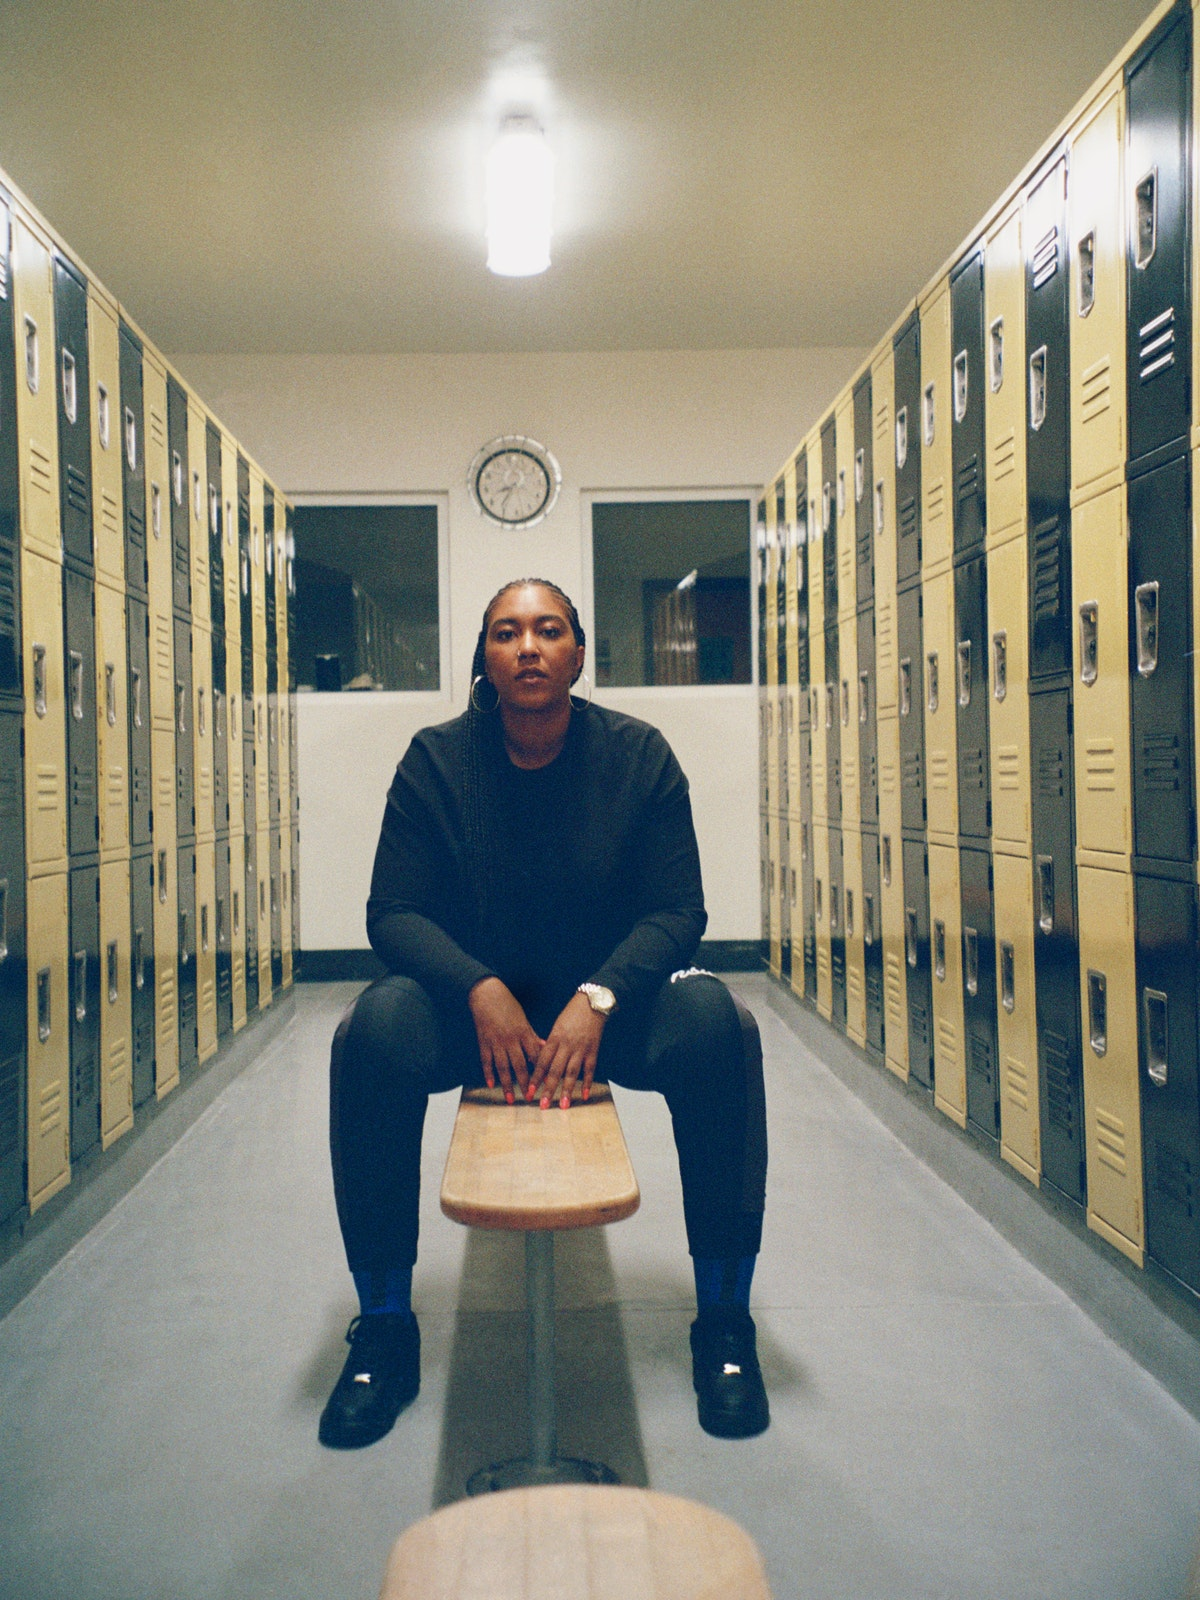 Nike's Latest Campaign Celebrates Community Activists In The Best Way